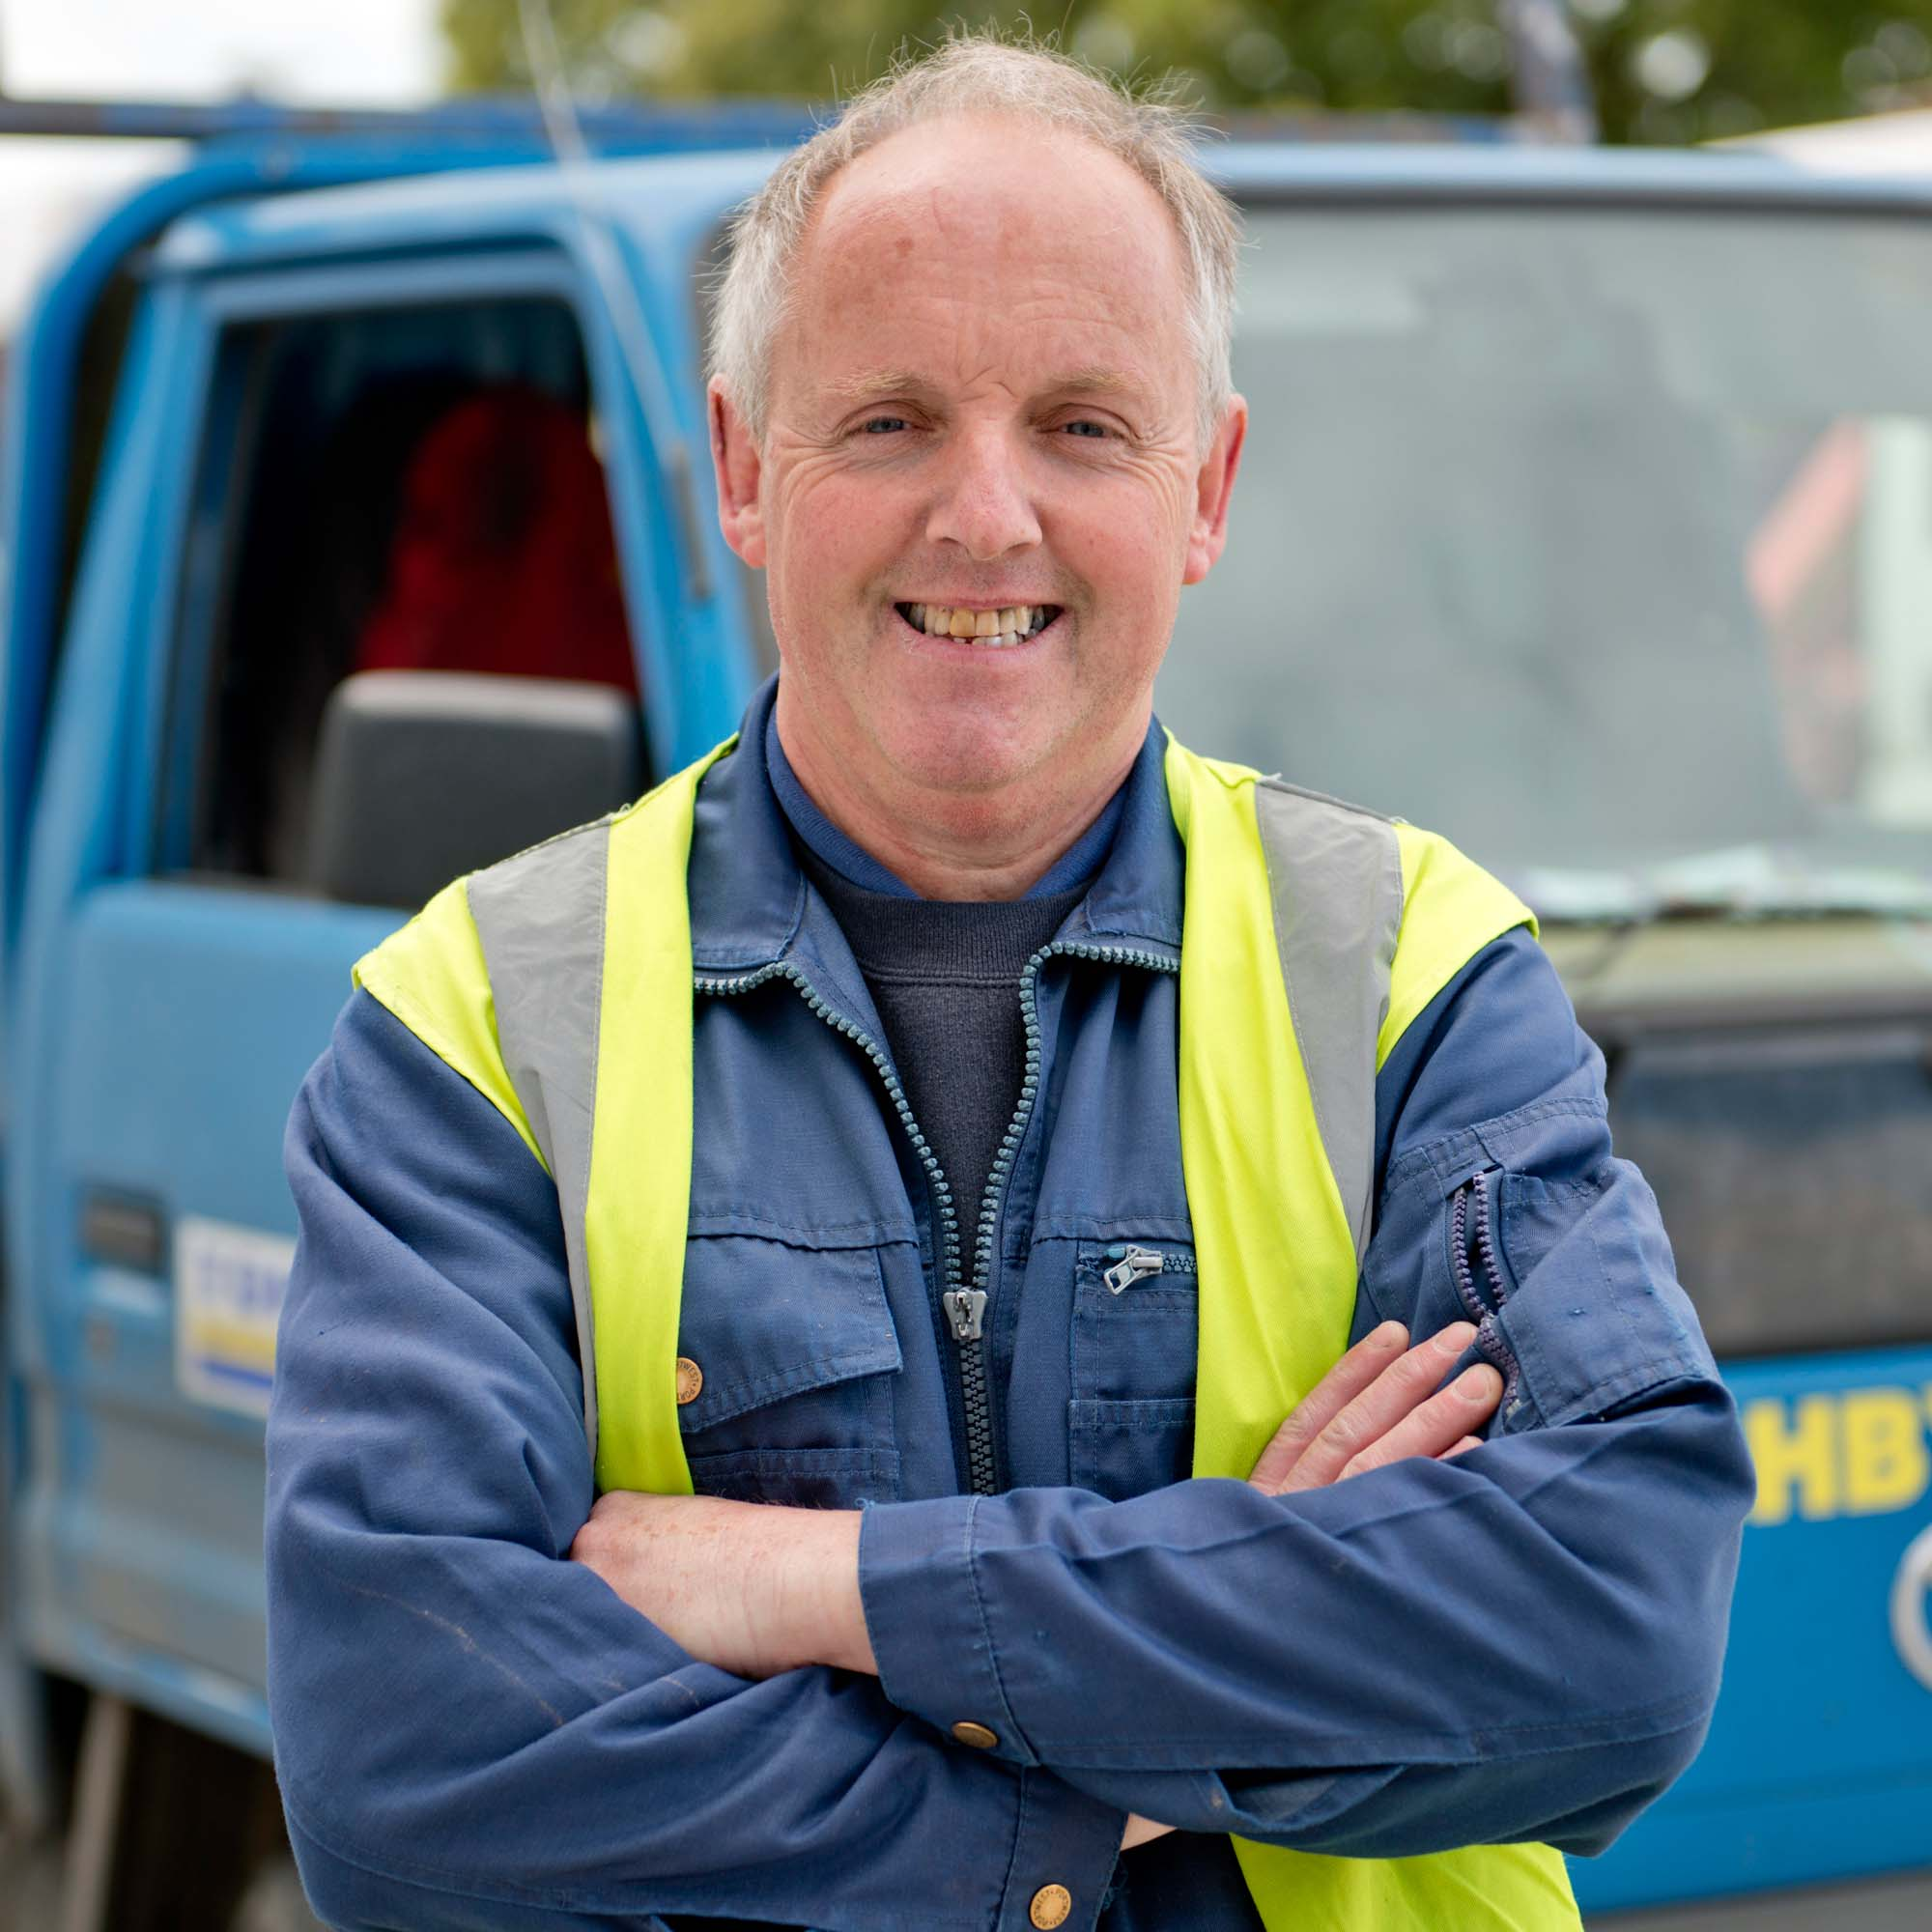 Delivery Driver - Michael Kelly